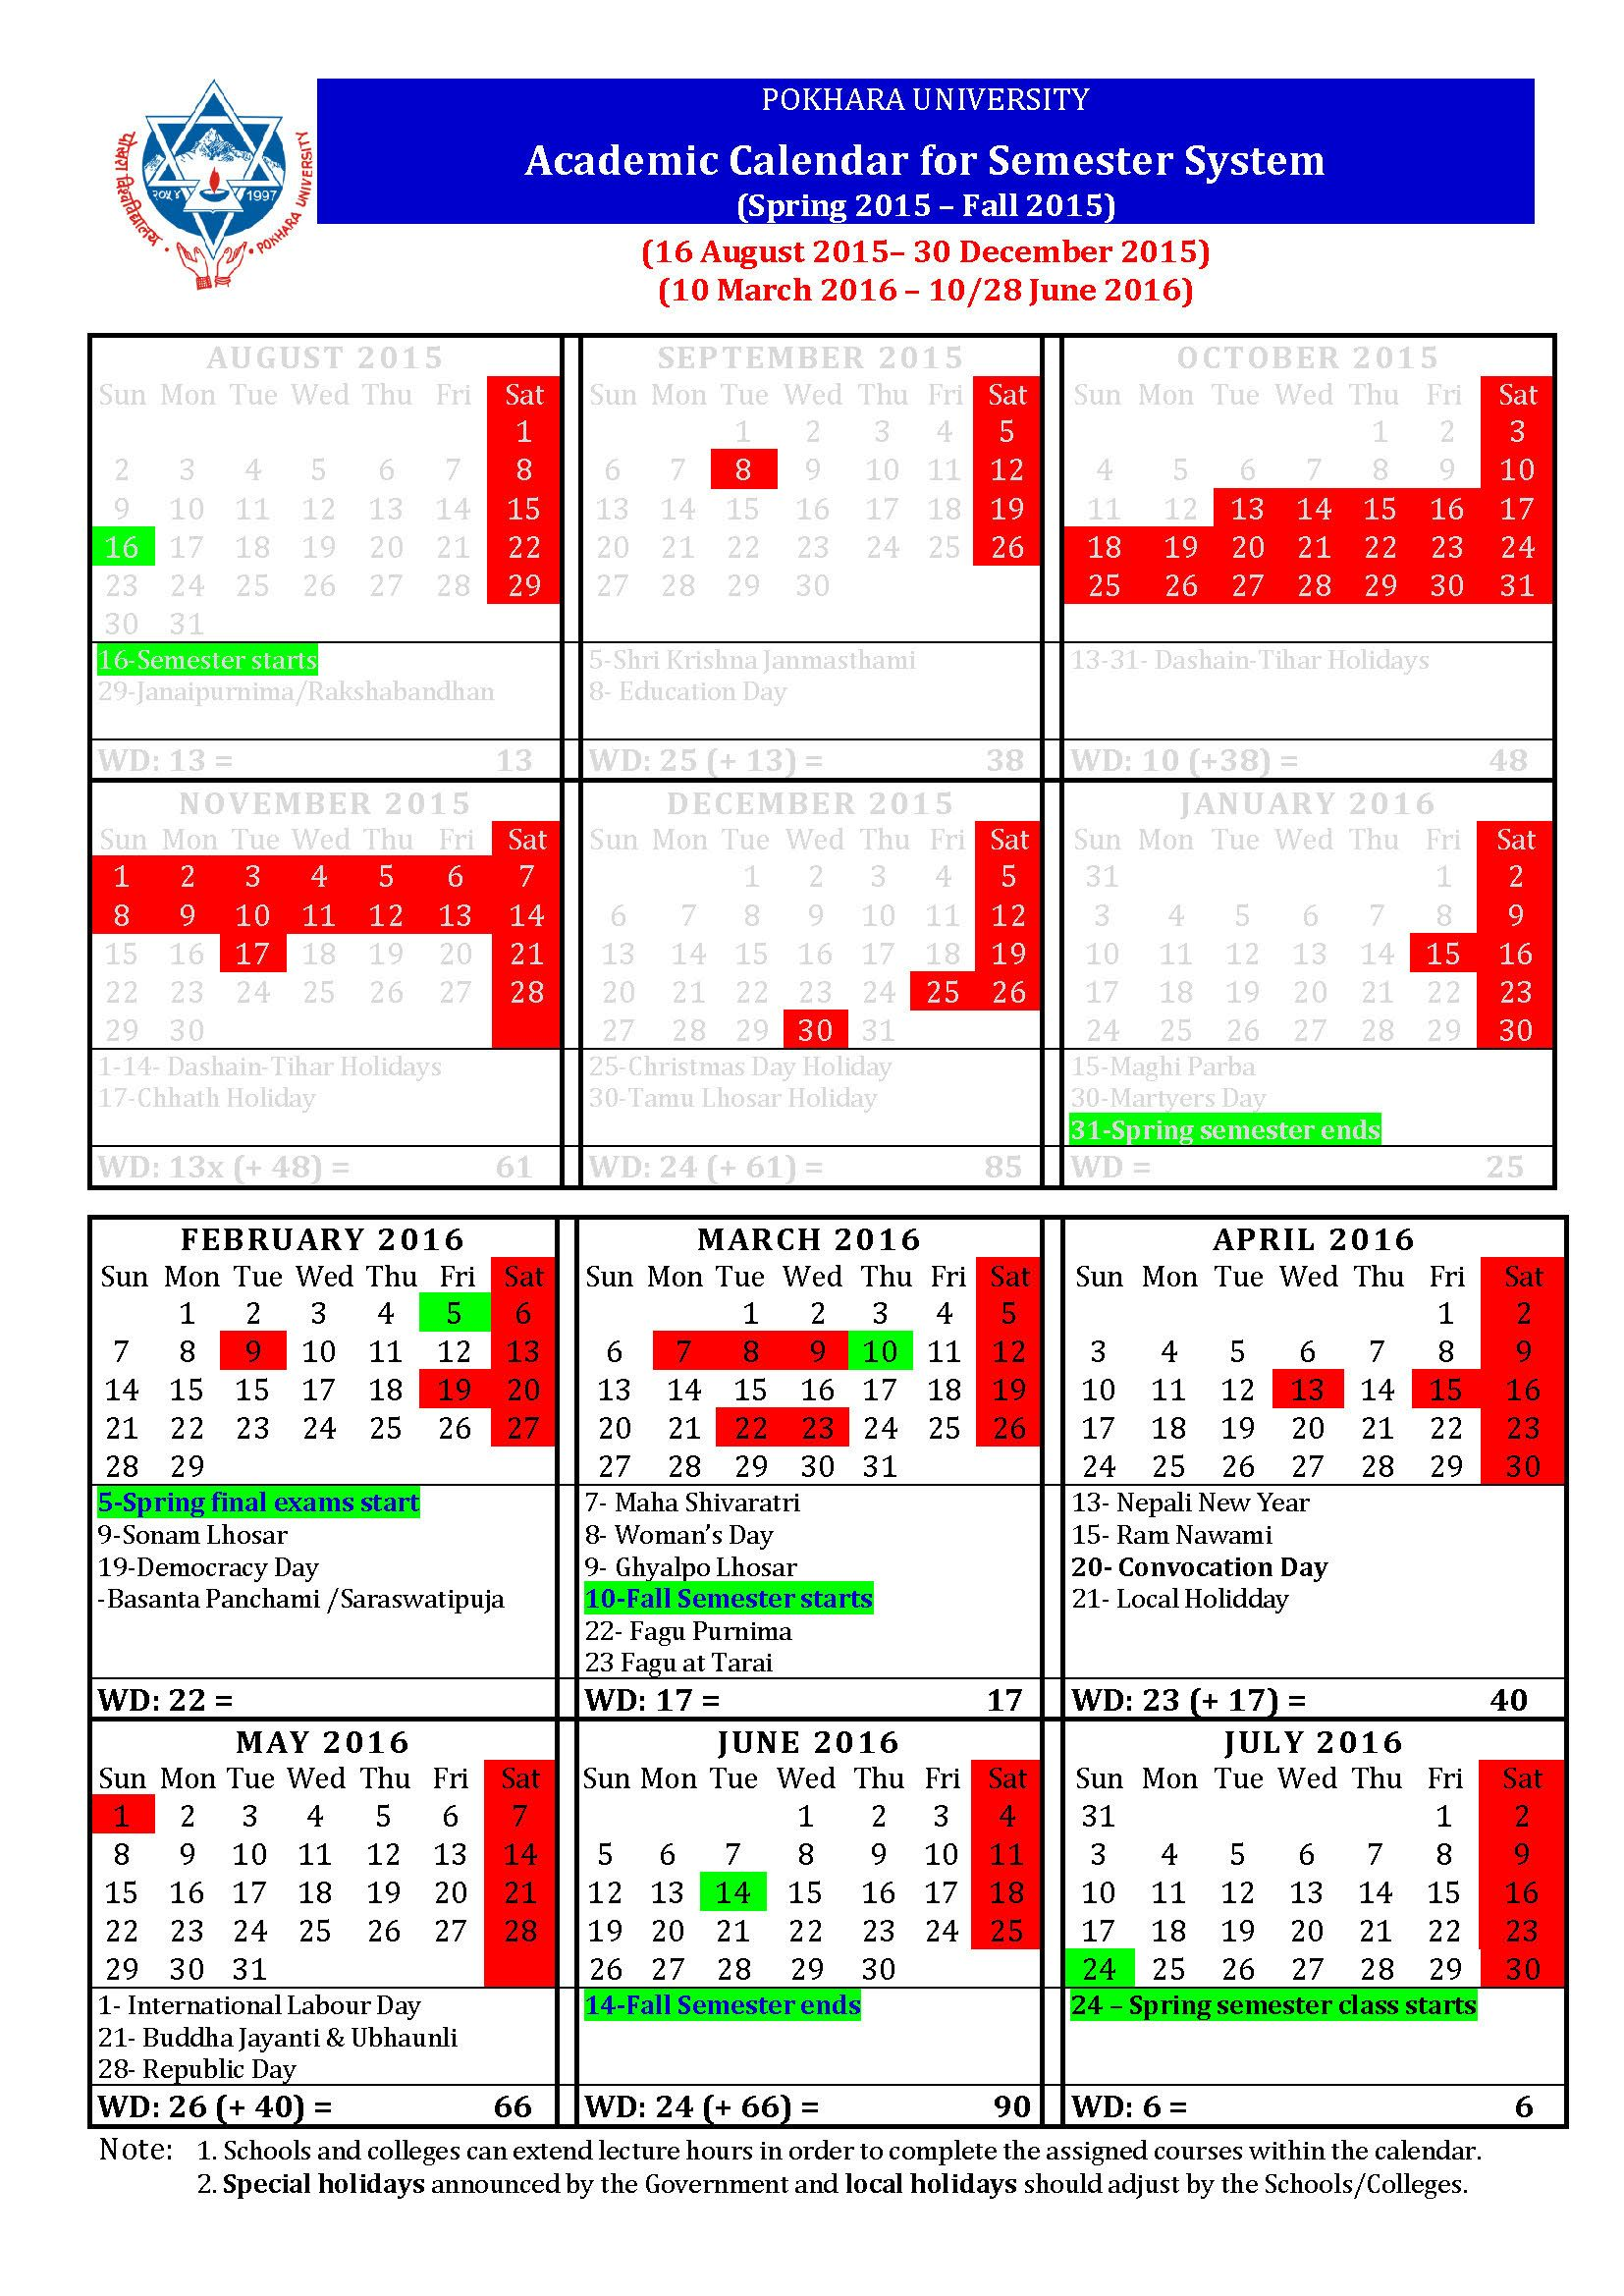 Academic Calendar 2016-2020 Pokhara University New Academic Calendar for Ongoing Semesters